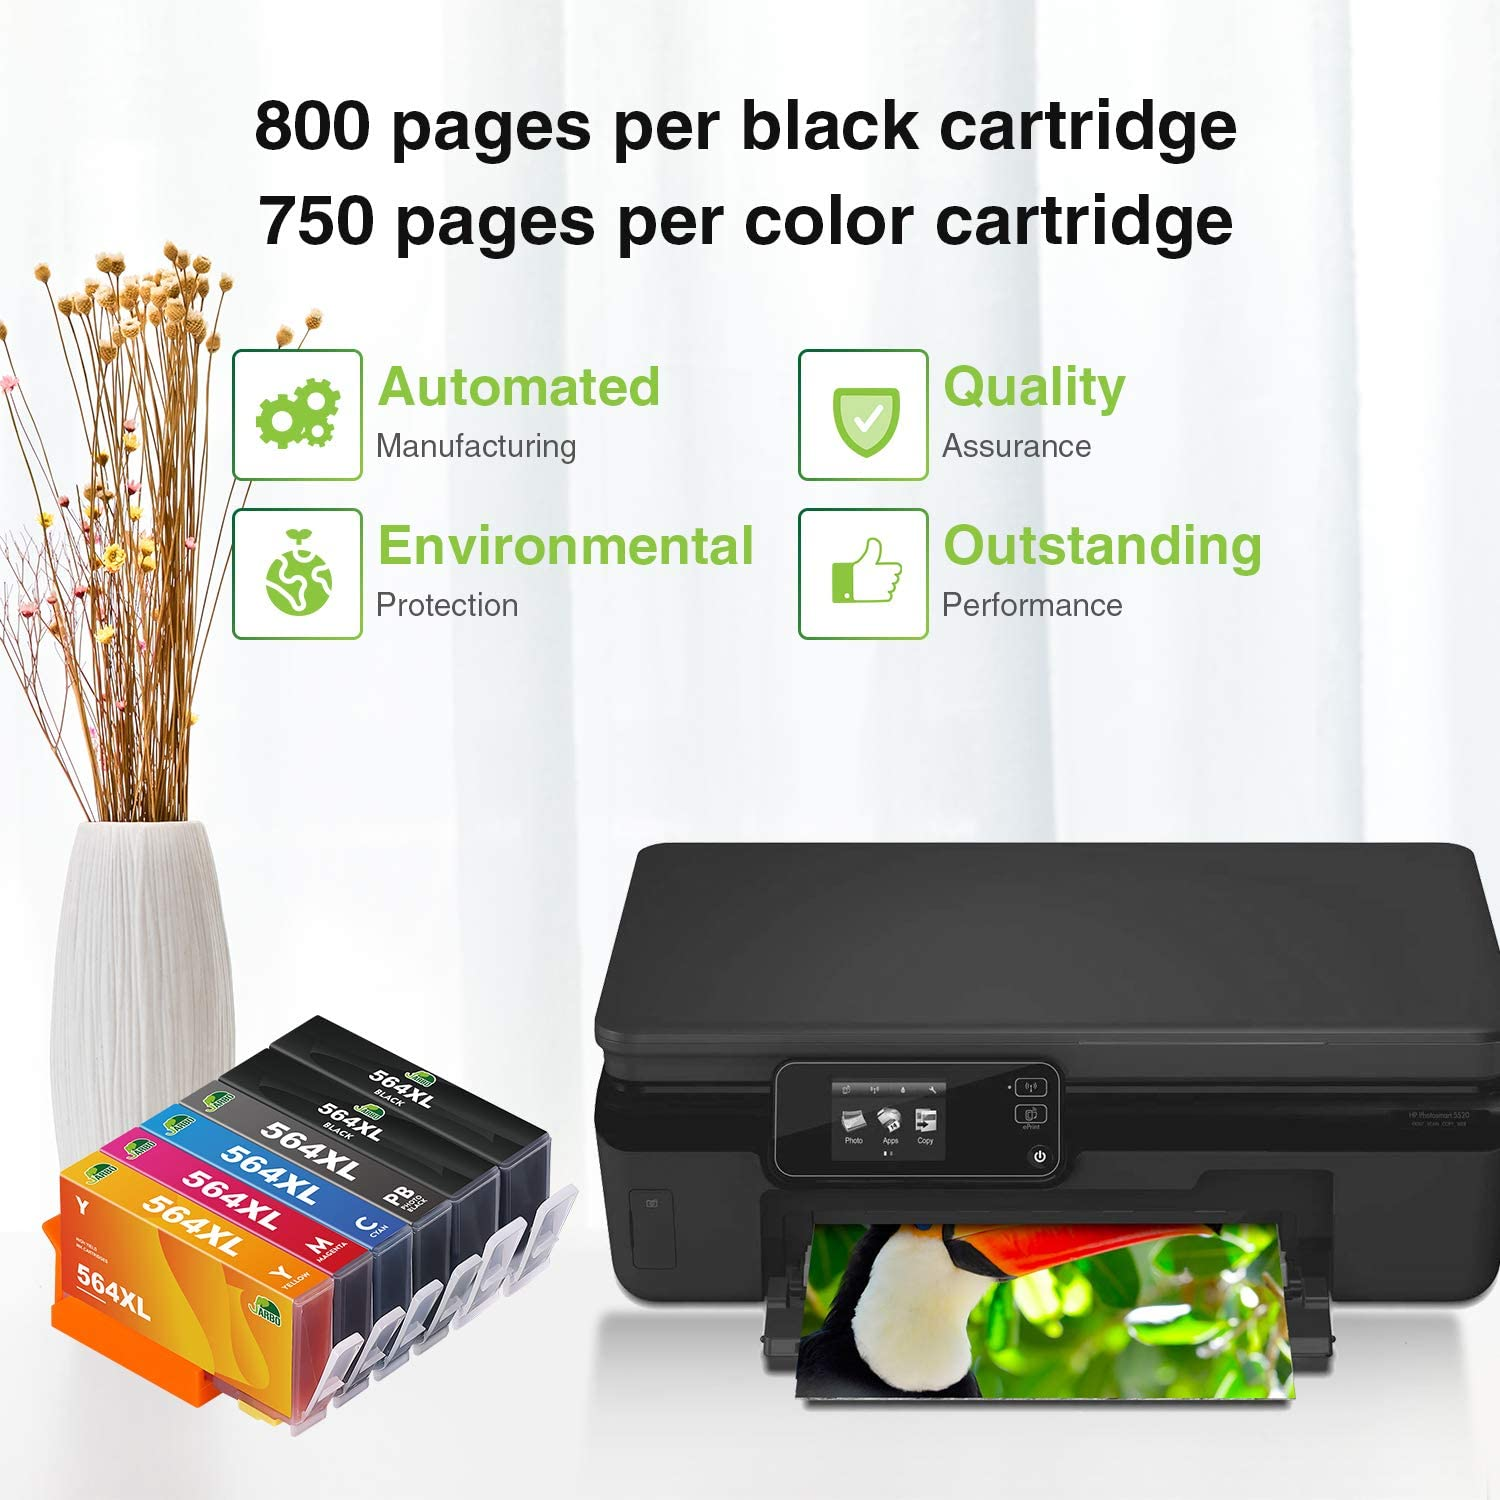 4 Black 2 Cyan 2 Magenta 2 Yellow JARBO 4 Color Replacement for Hp Printer 564XL Ink Cartridge High Yield 10 Pack Compatible with HP Photosmart 5520 6520 6510 7510 7520 7515 C6380 C310a